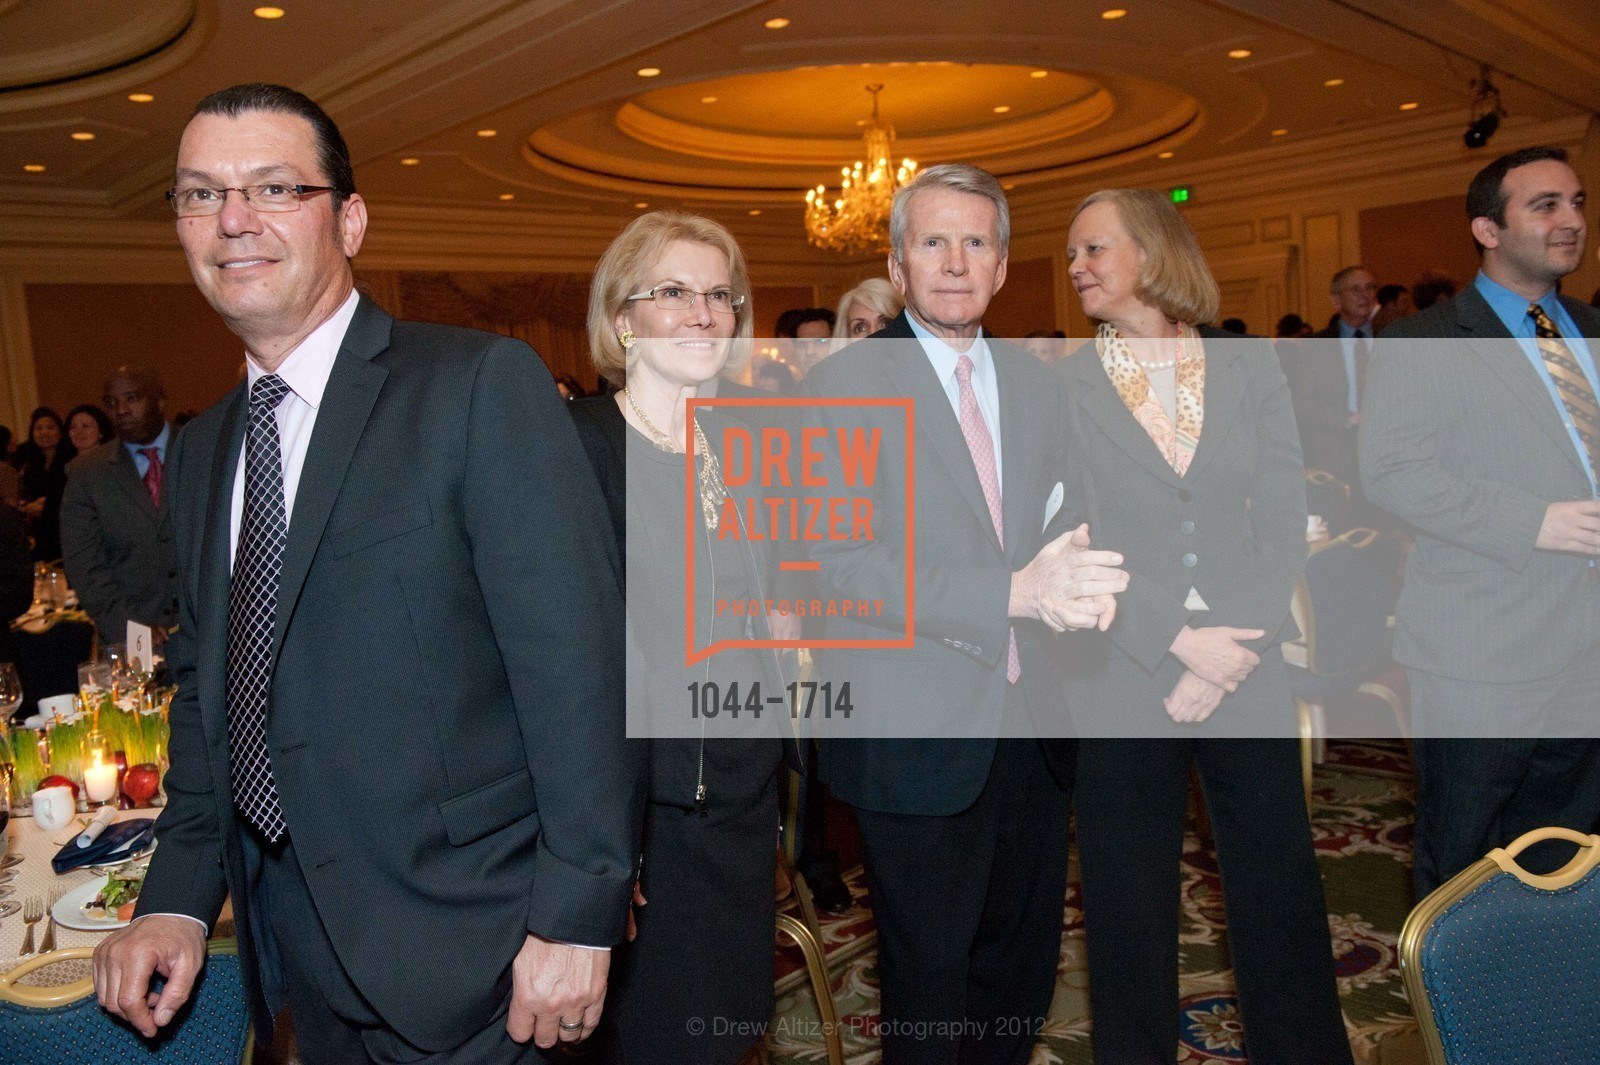 Meg Whitman, Photo #1044-1714